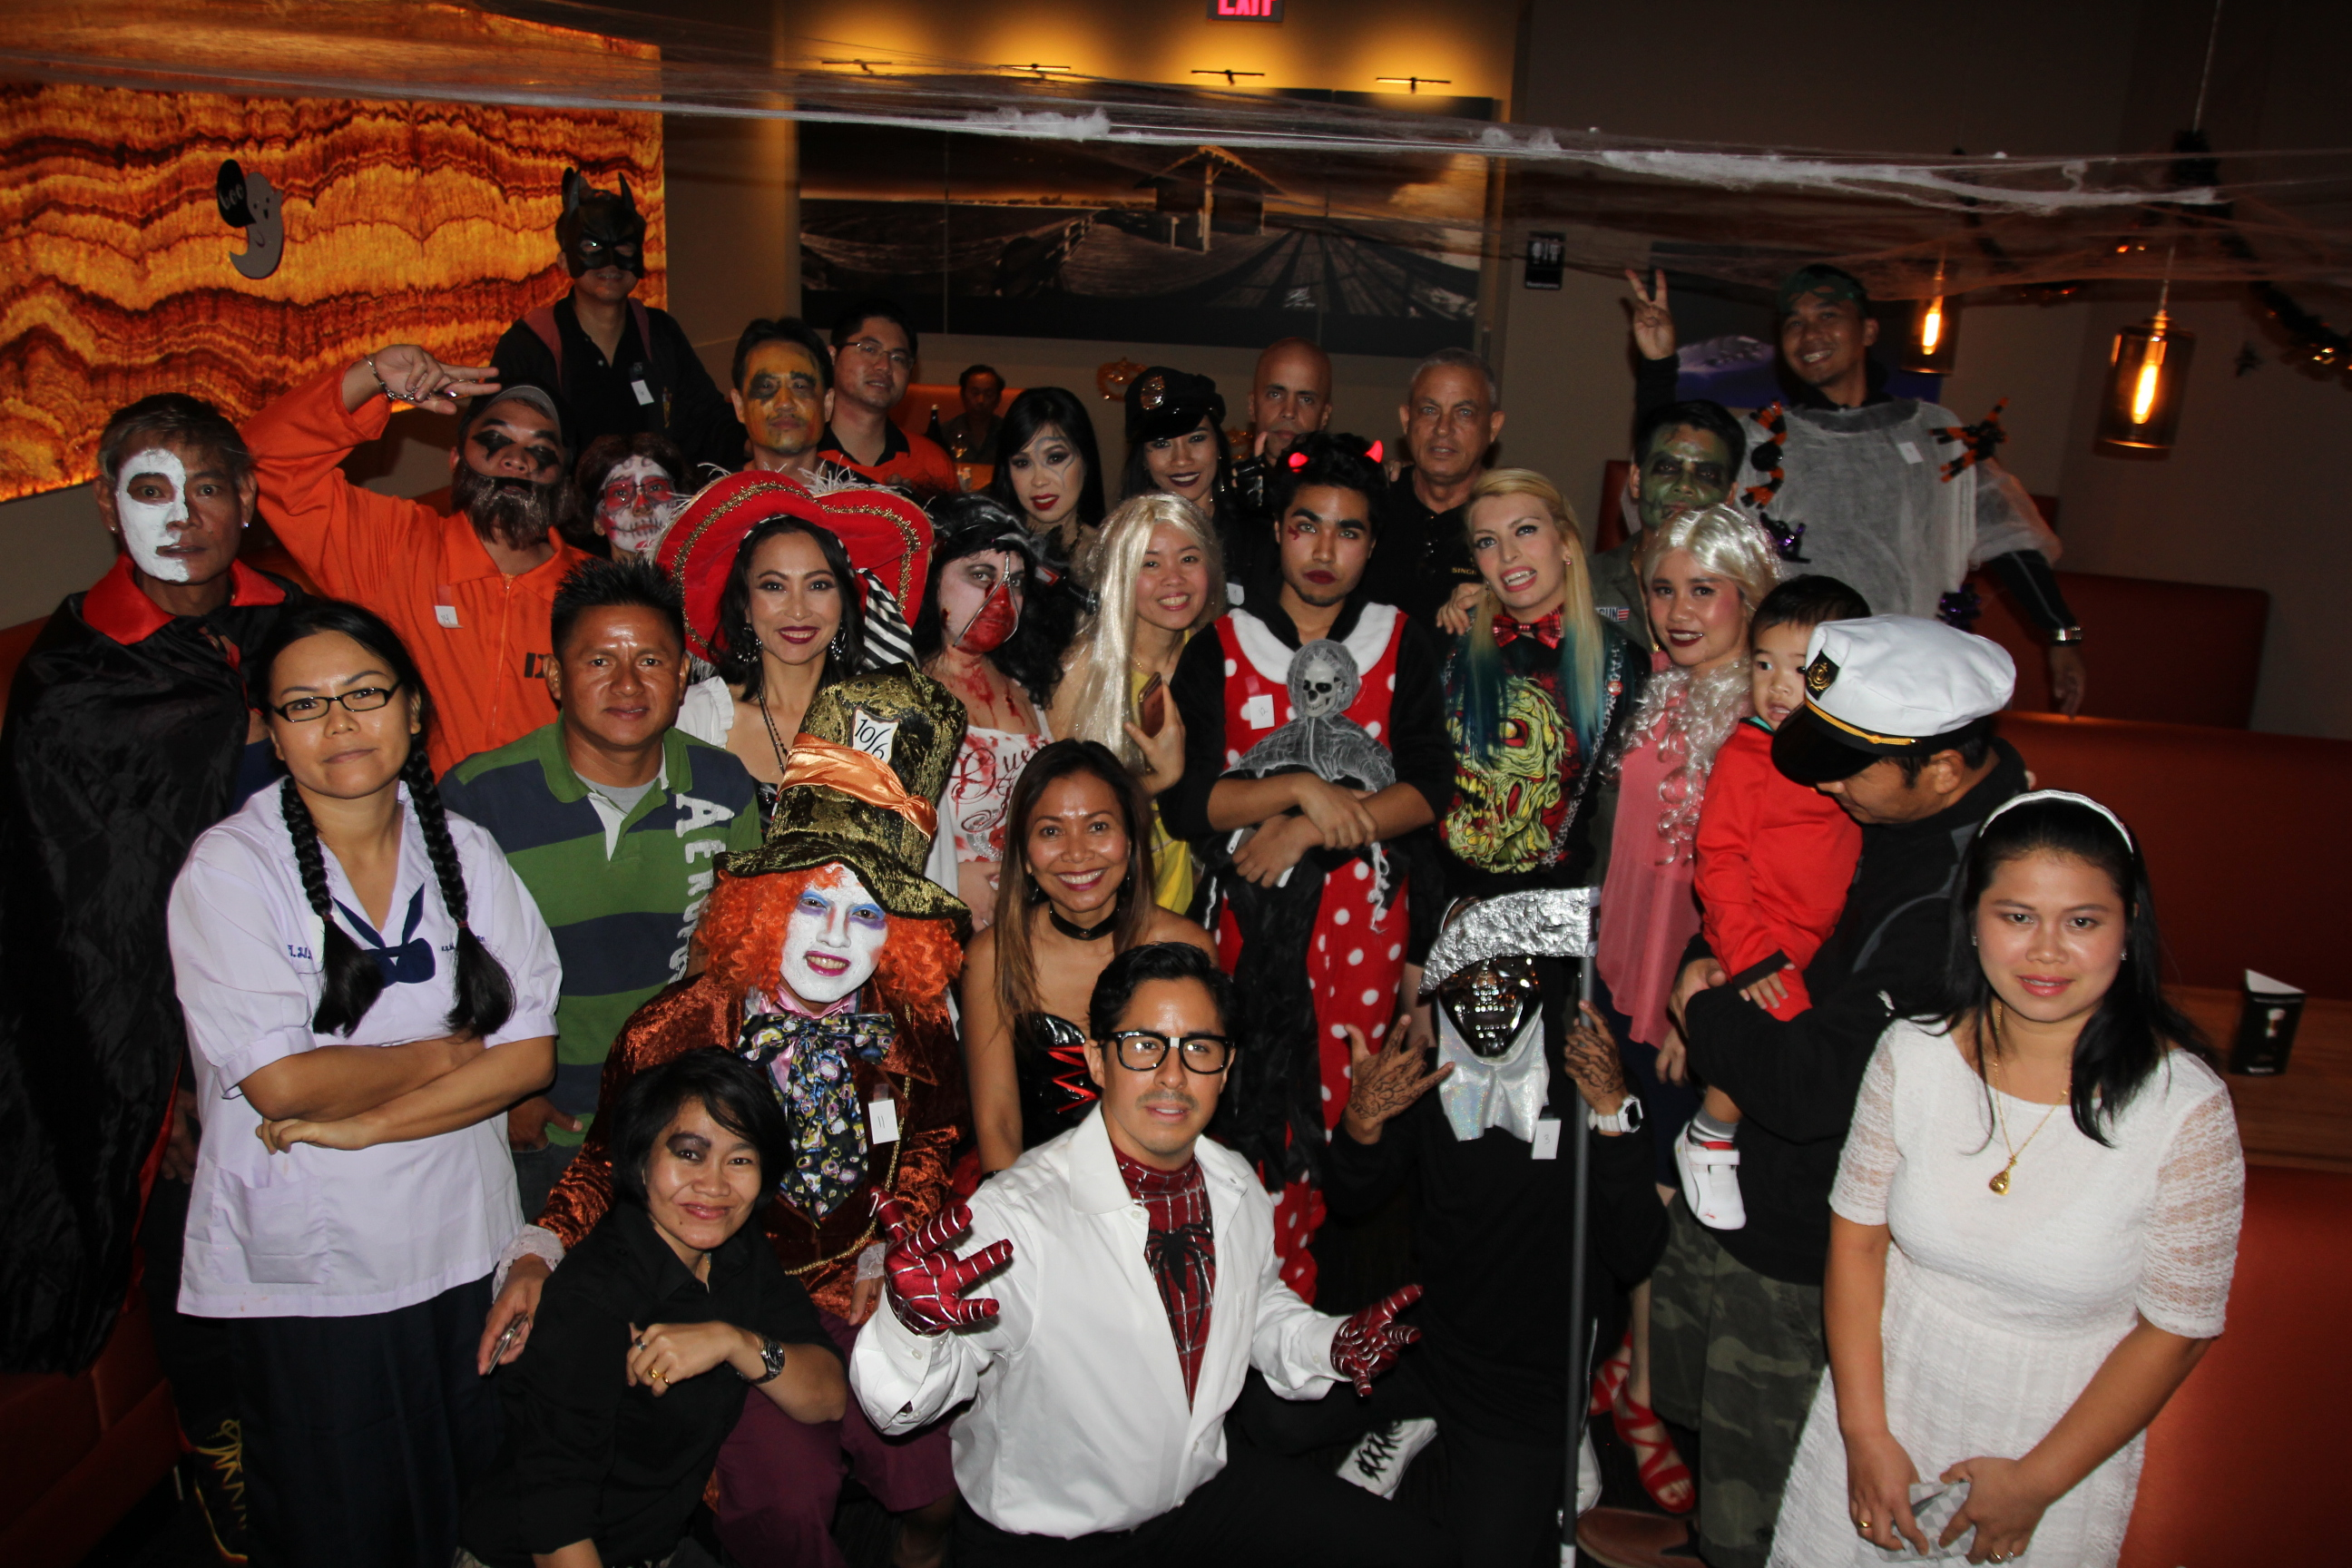 5th Anniversary and Halloween Party Pics